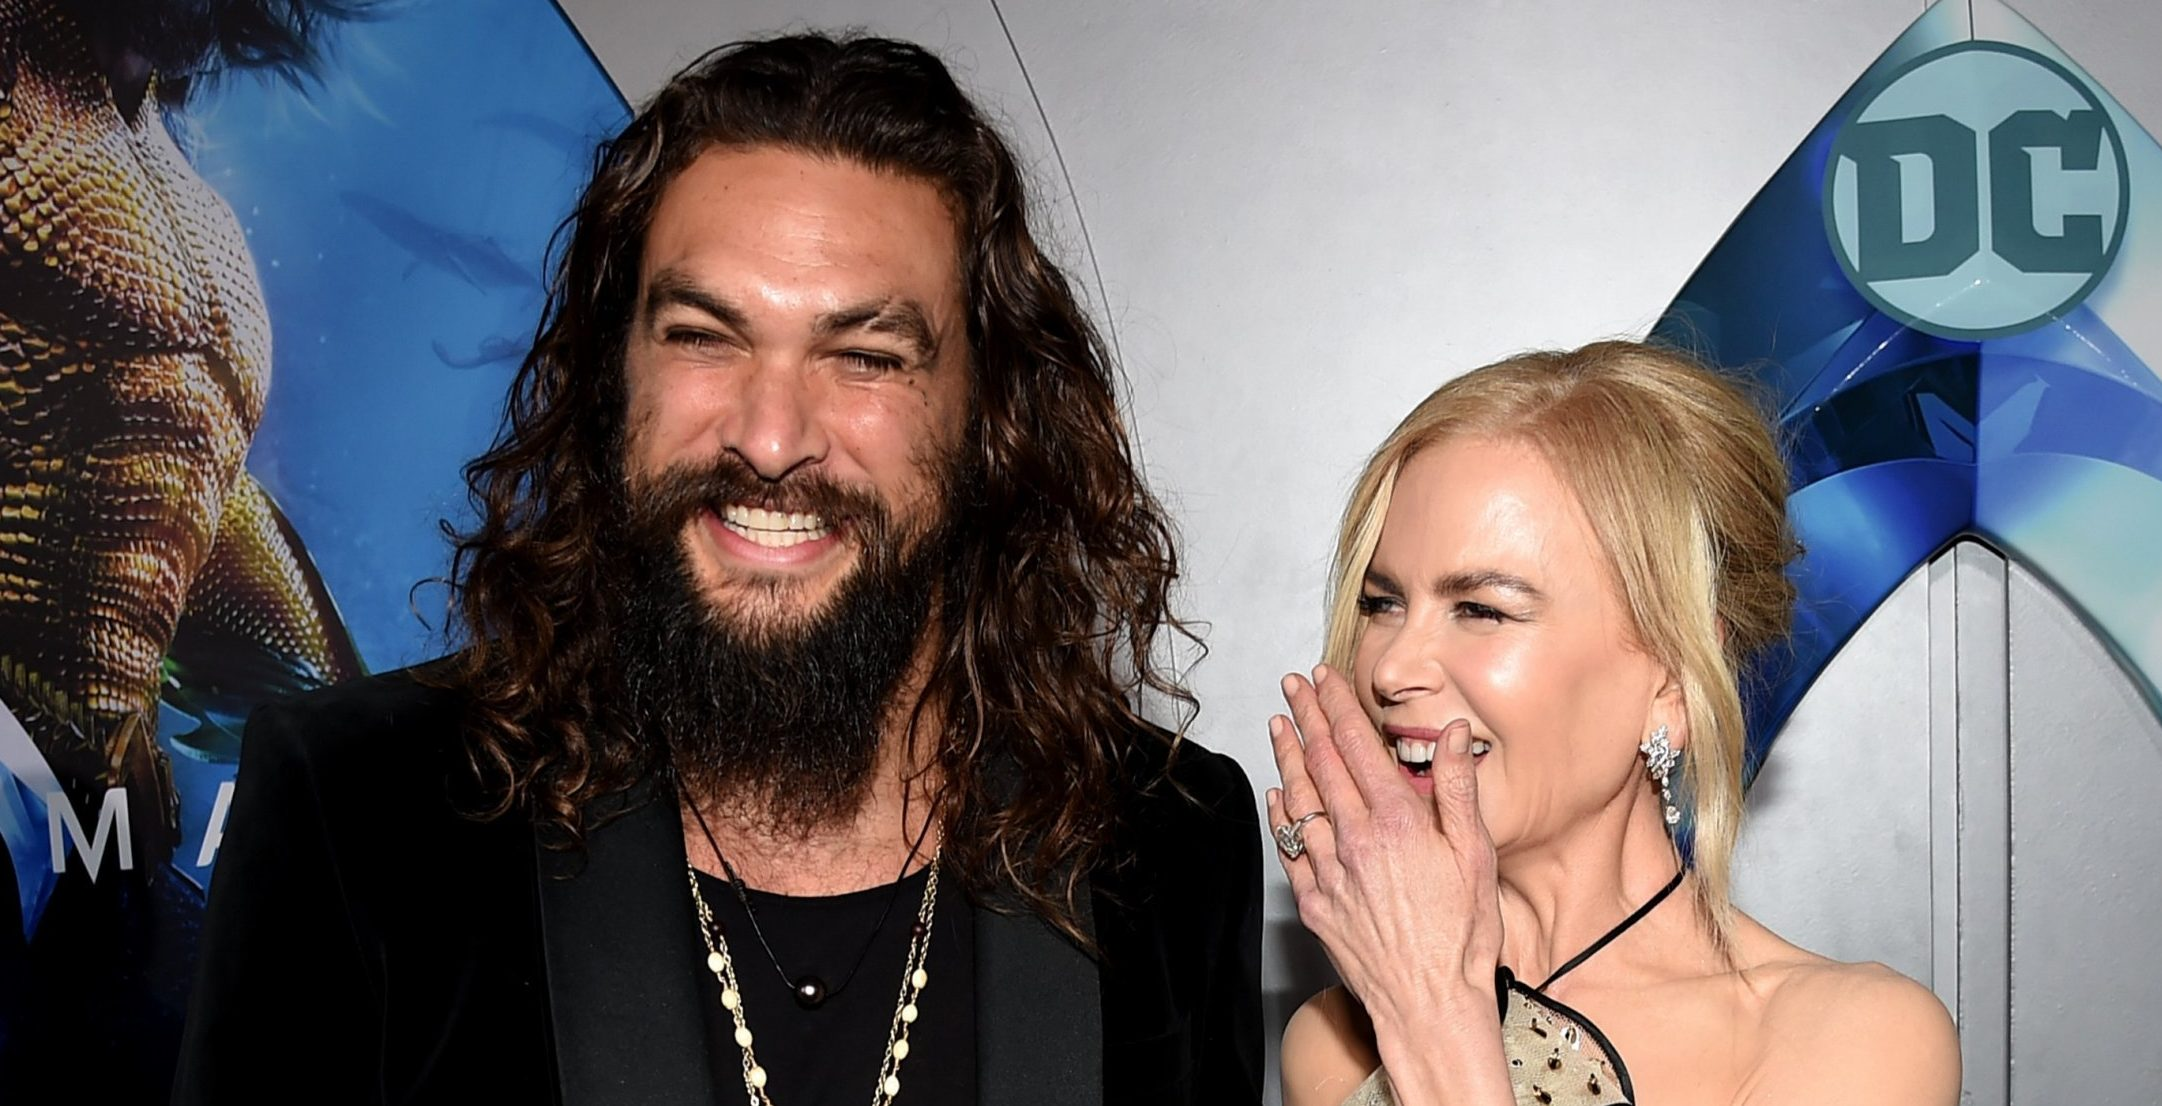 """LOS ANGELES, CA - DECEMBER 12: Jason Momoa (L) and Nicole Kidman arrive at the premiere of Warner Bros. Pictures' """"Aquaman"""" at the Chinese Theatre on December 12, 2018 in Los Angeles, California. (Photo by Kevin Winter/Getty Images)"""